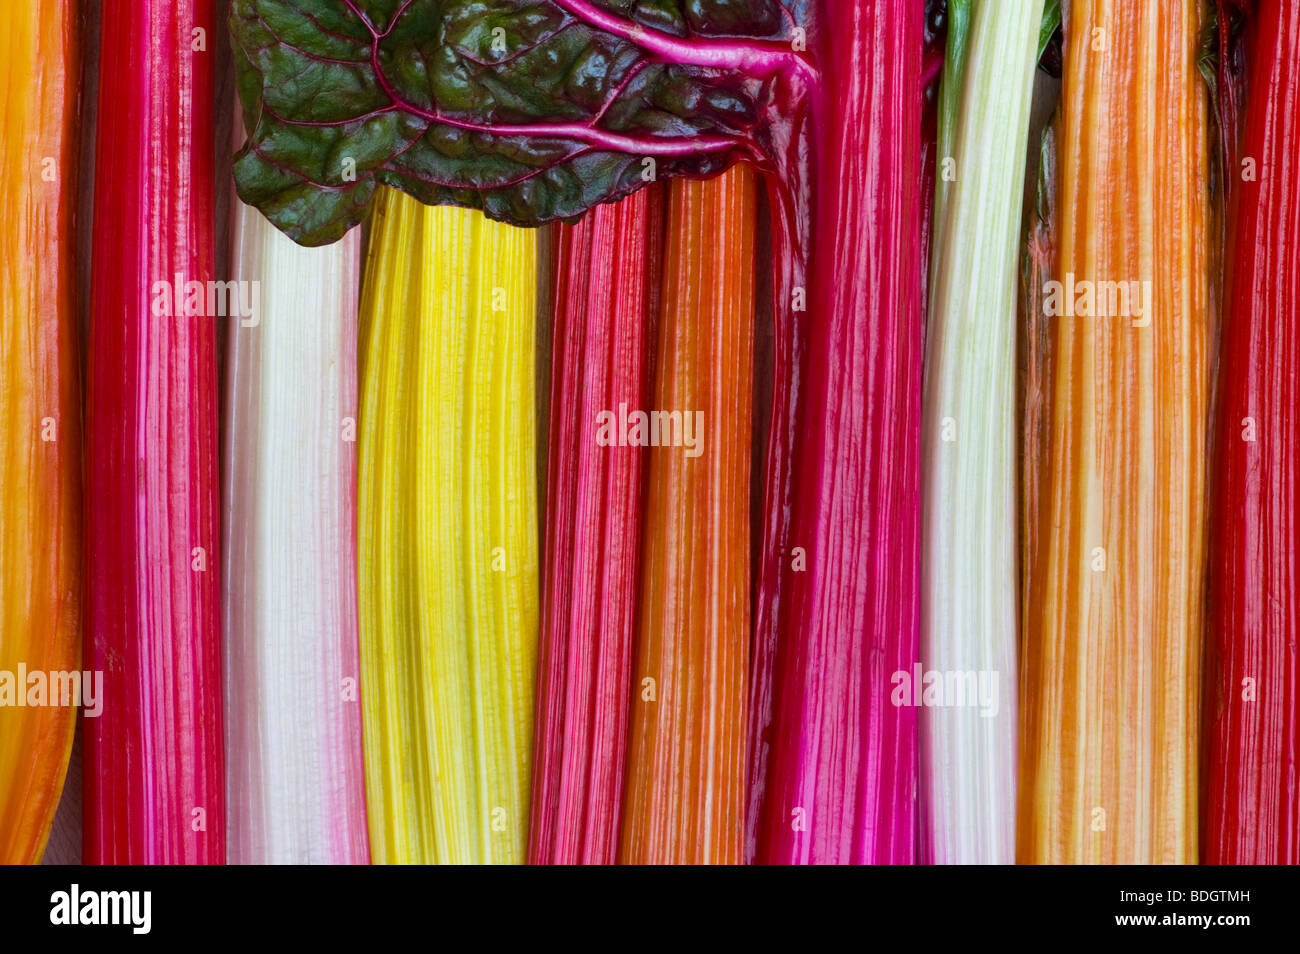 Rainbow chard vegetable pattern - Stock Image